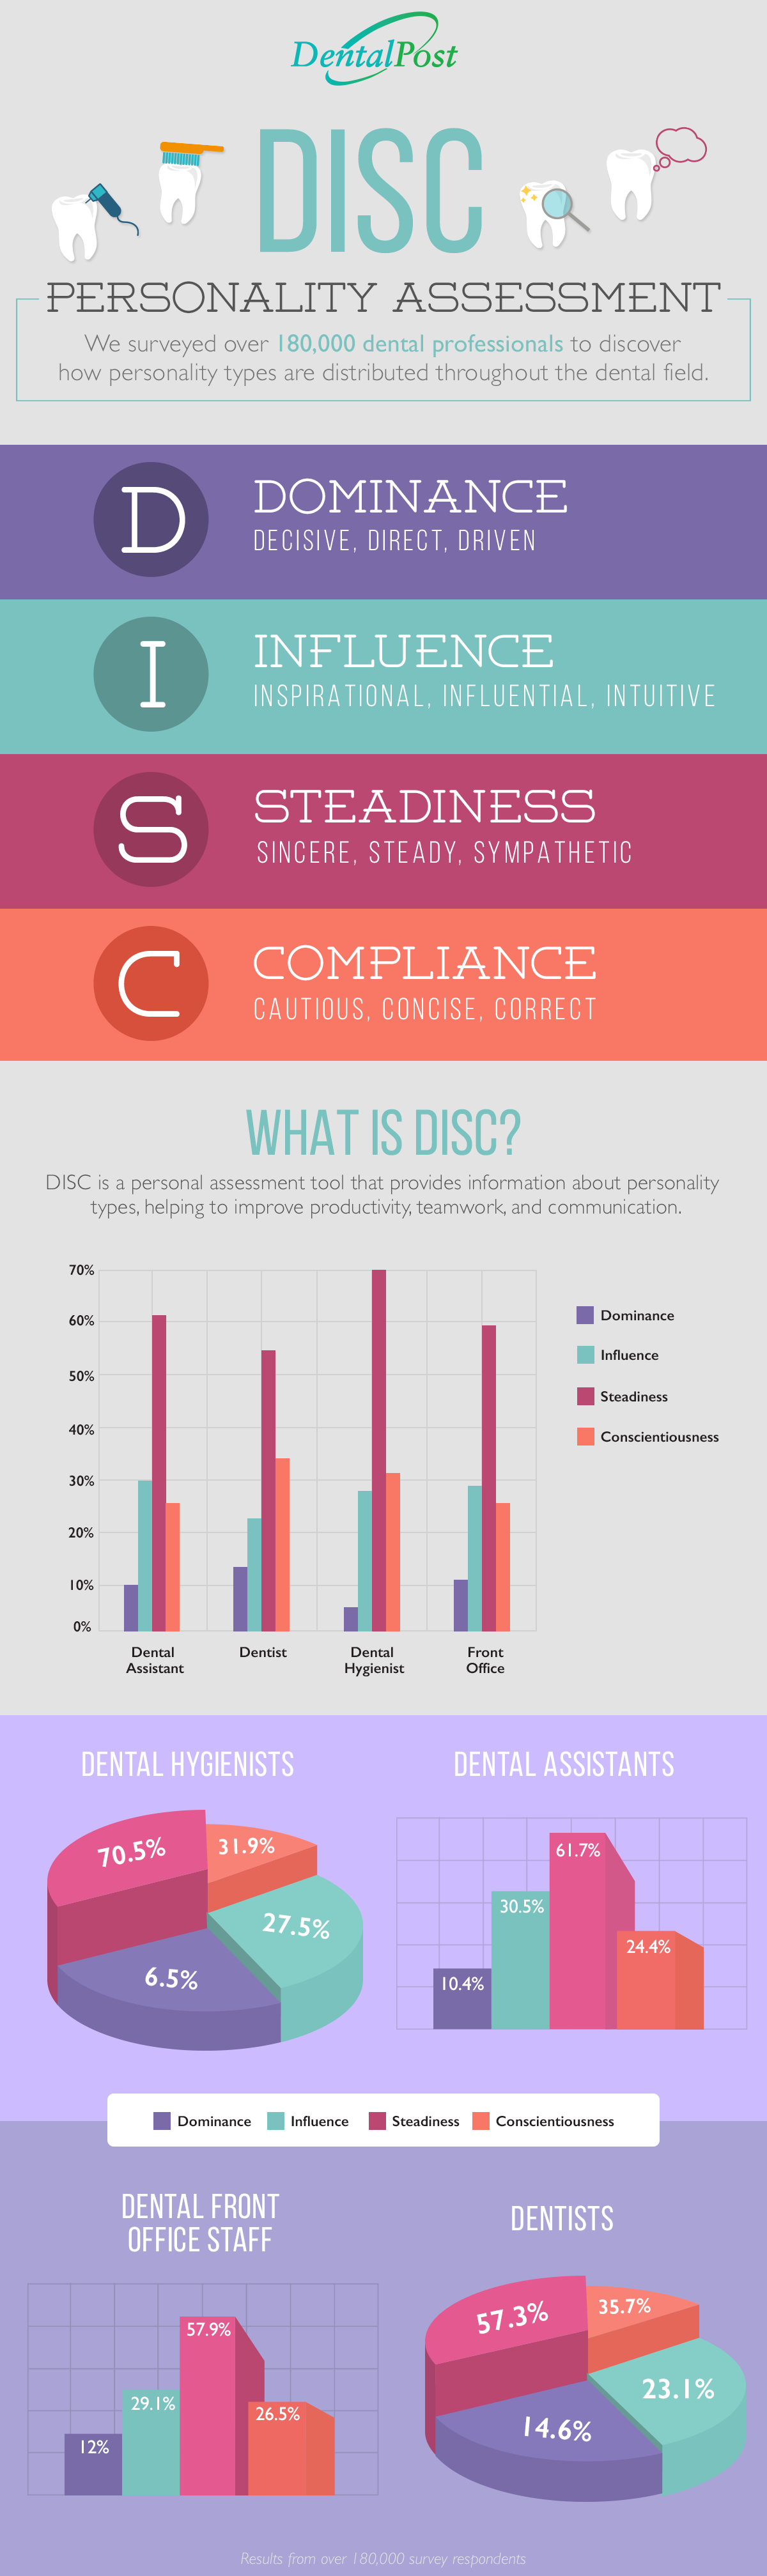 DISC dentistry personality assessment infographic DentalPost